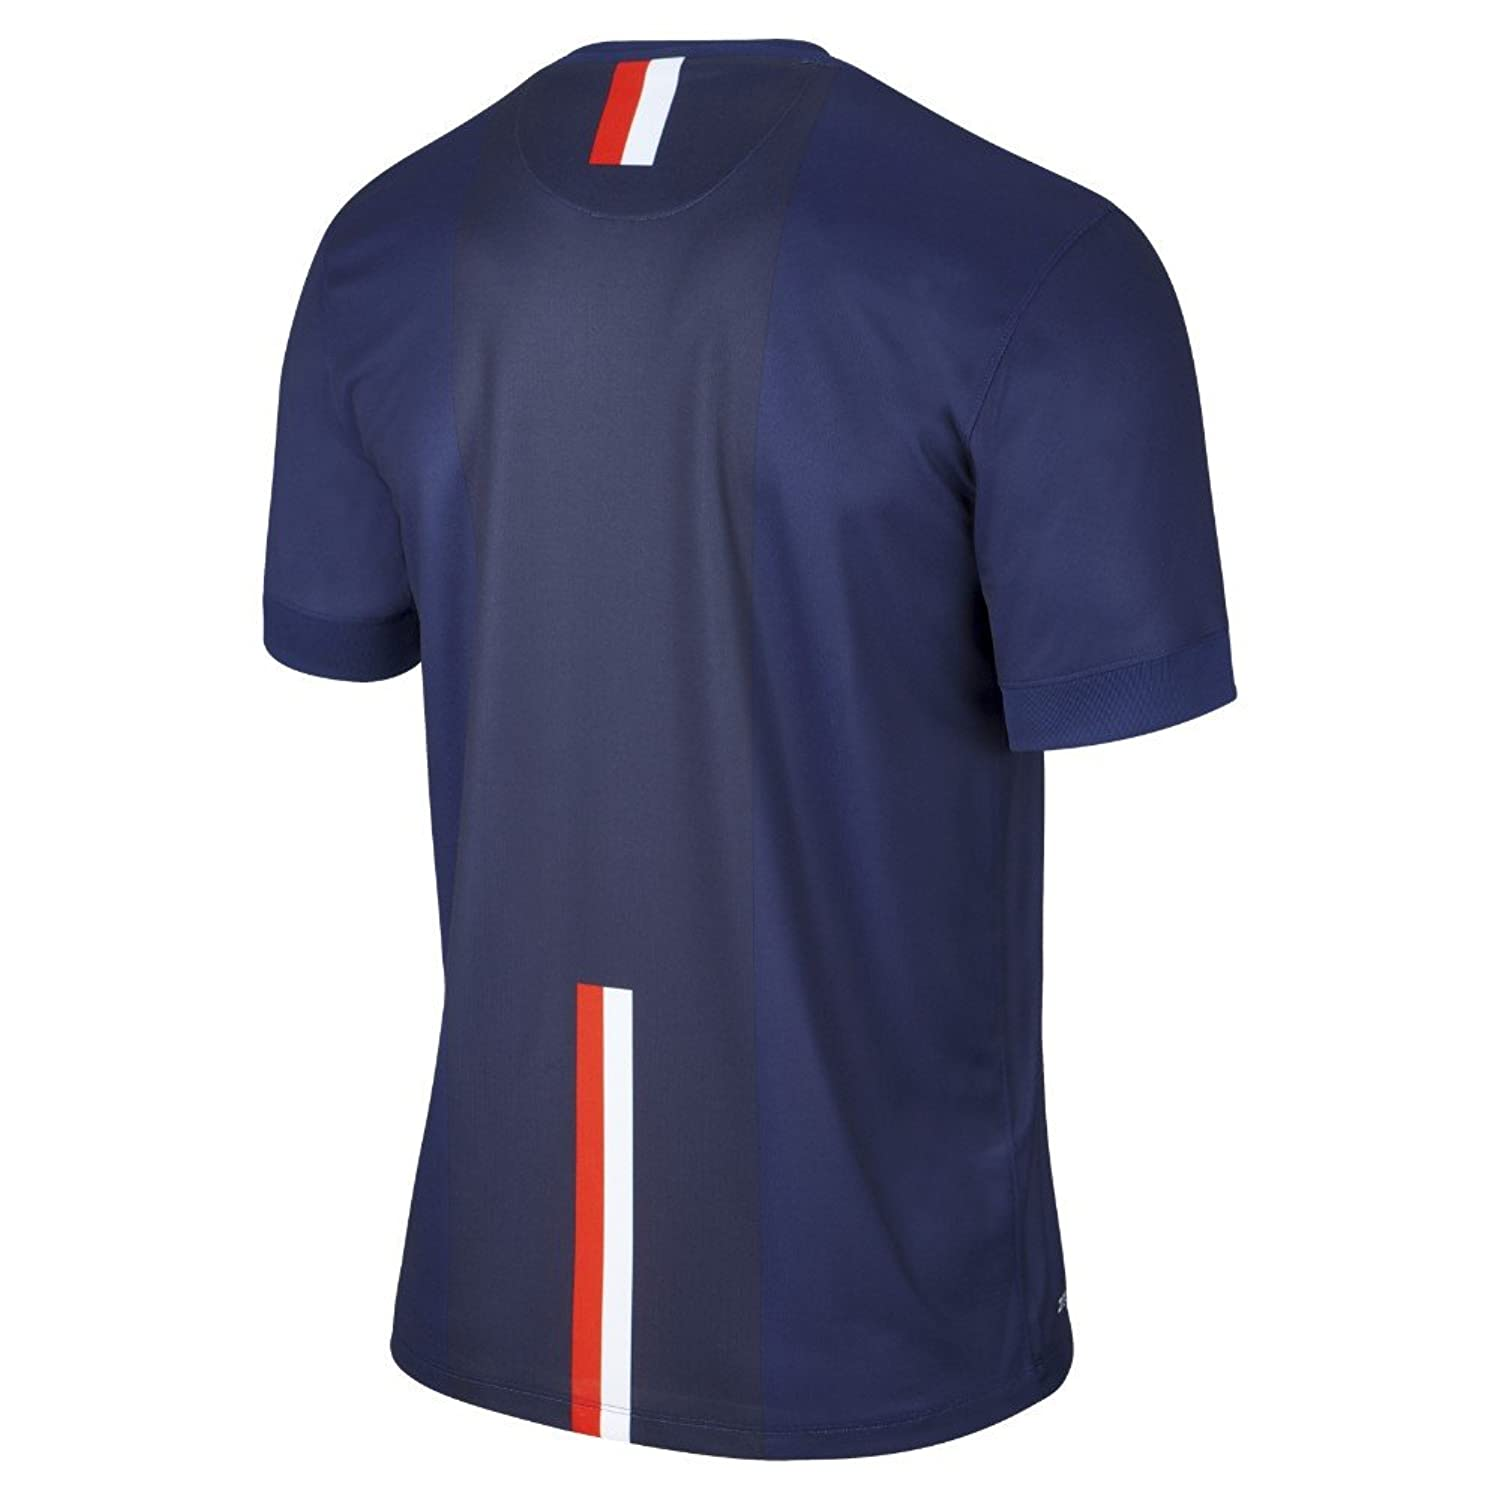 Amazon.com : Nike Paris Saint Germain PSG Home Jersey (X-Large) : Sports & Outdoors